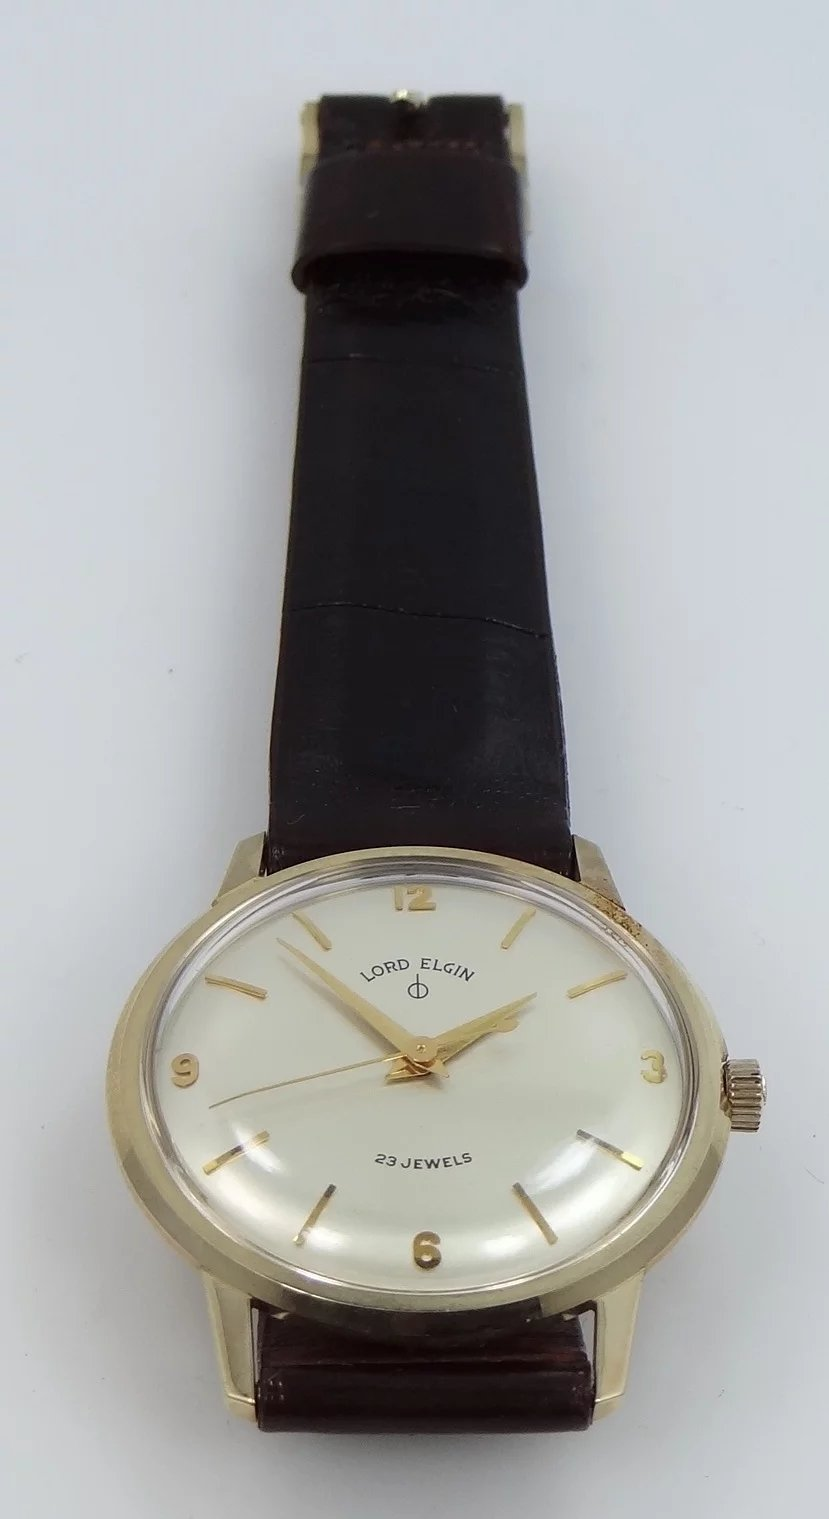 Man 39 s 10k gold 23j lord elgin watch ford motor company for Ford motor company 10k report